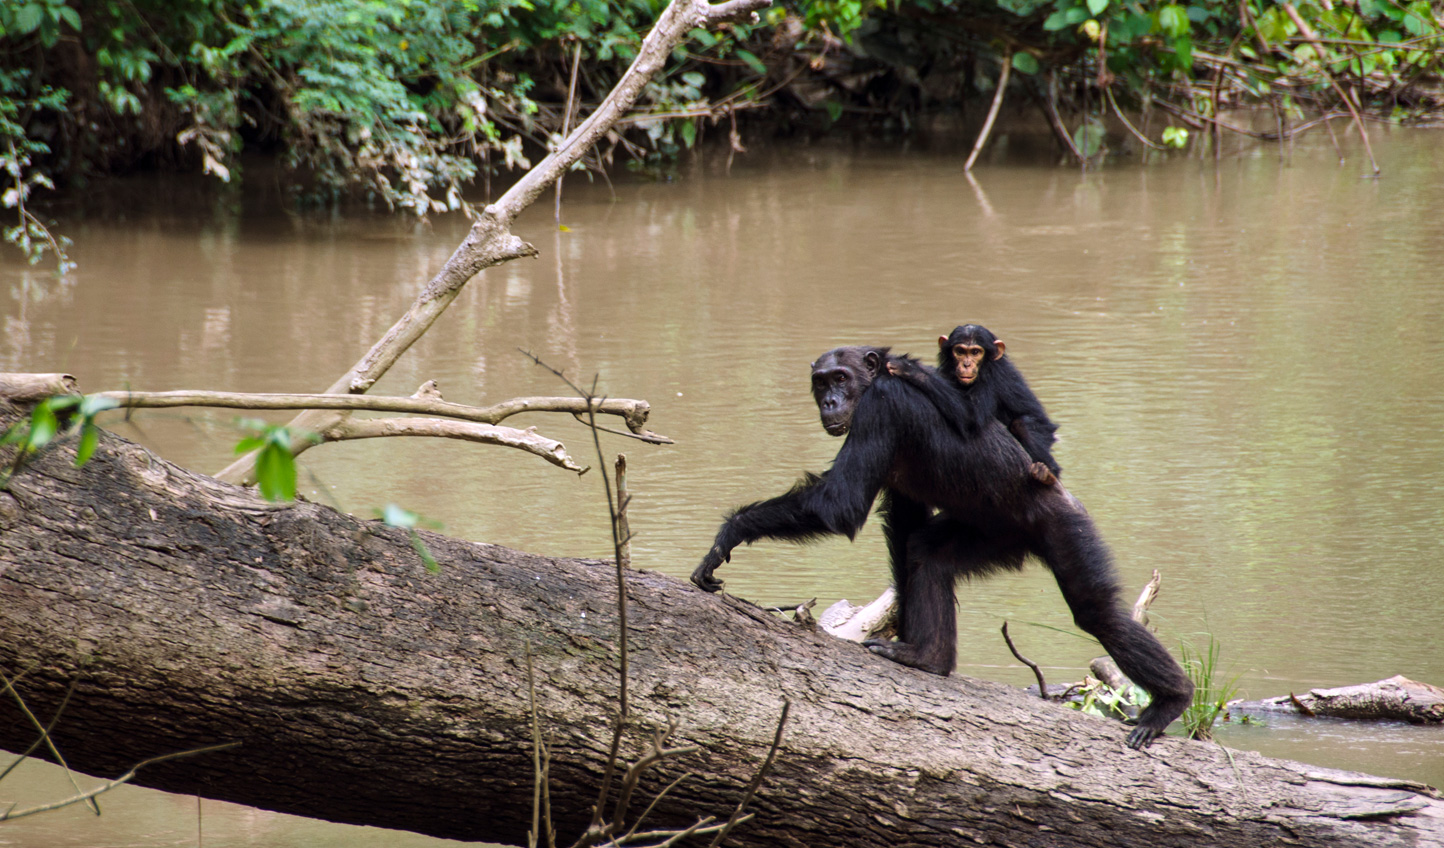 Walk alongside the chimps of Kyambura Gorge